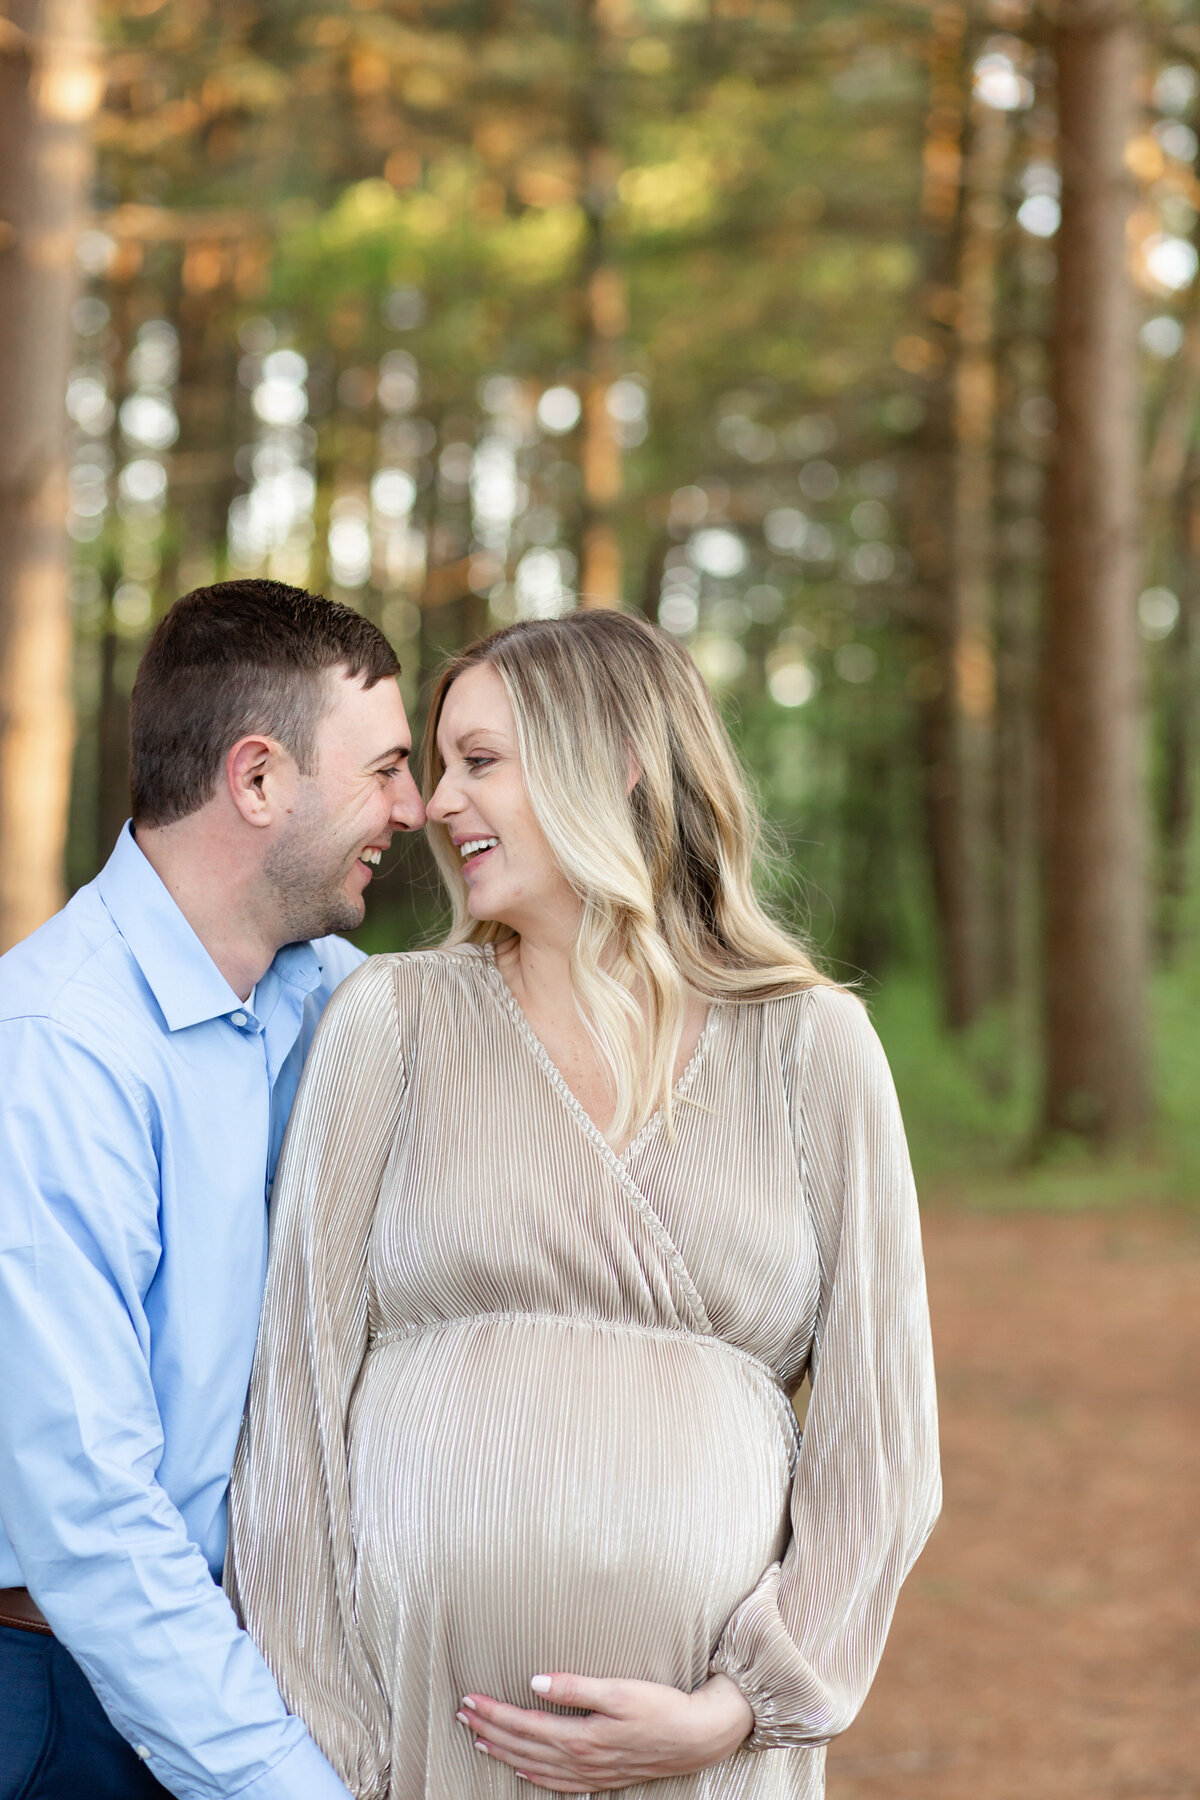 Spring Sunset Maternity Session with gold maxi dress standing by pine trees  at Busch Wildlife in St. Louis by Amy Britton Photography Photographer  in St. Louis